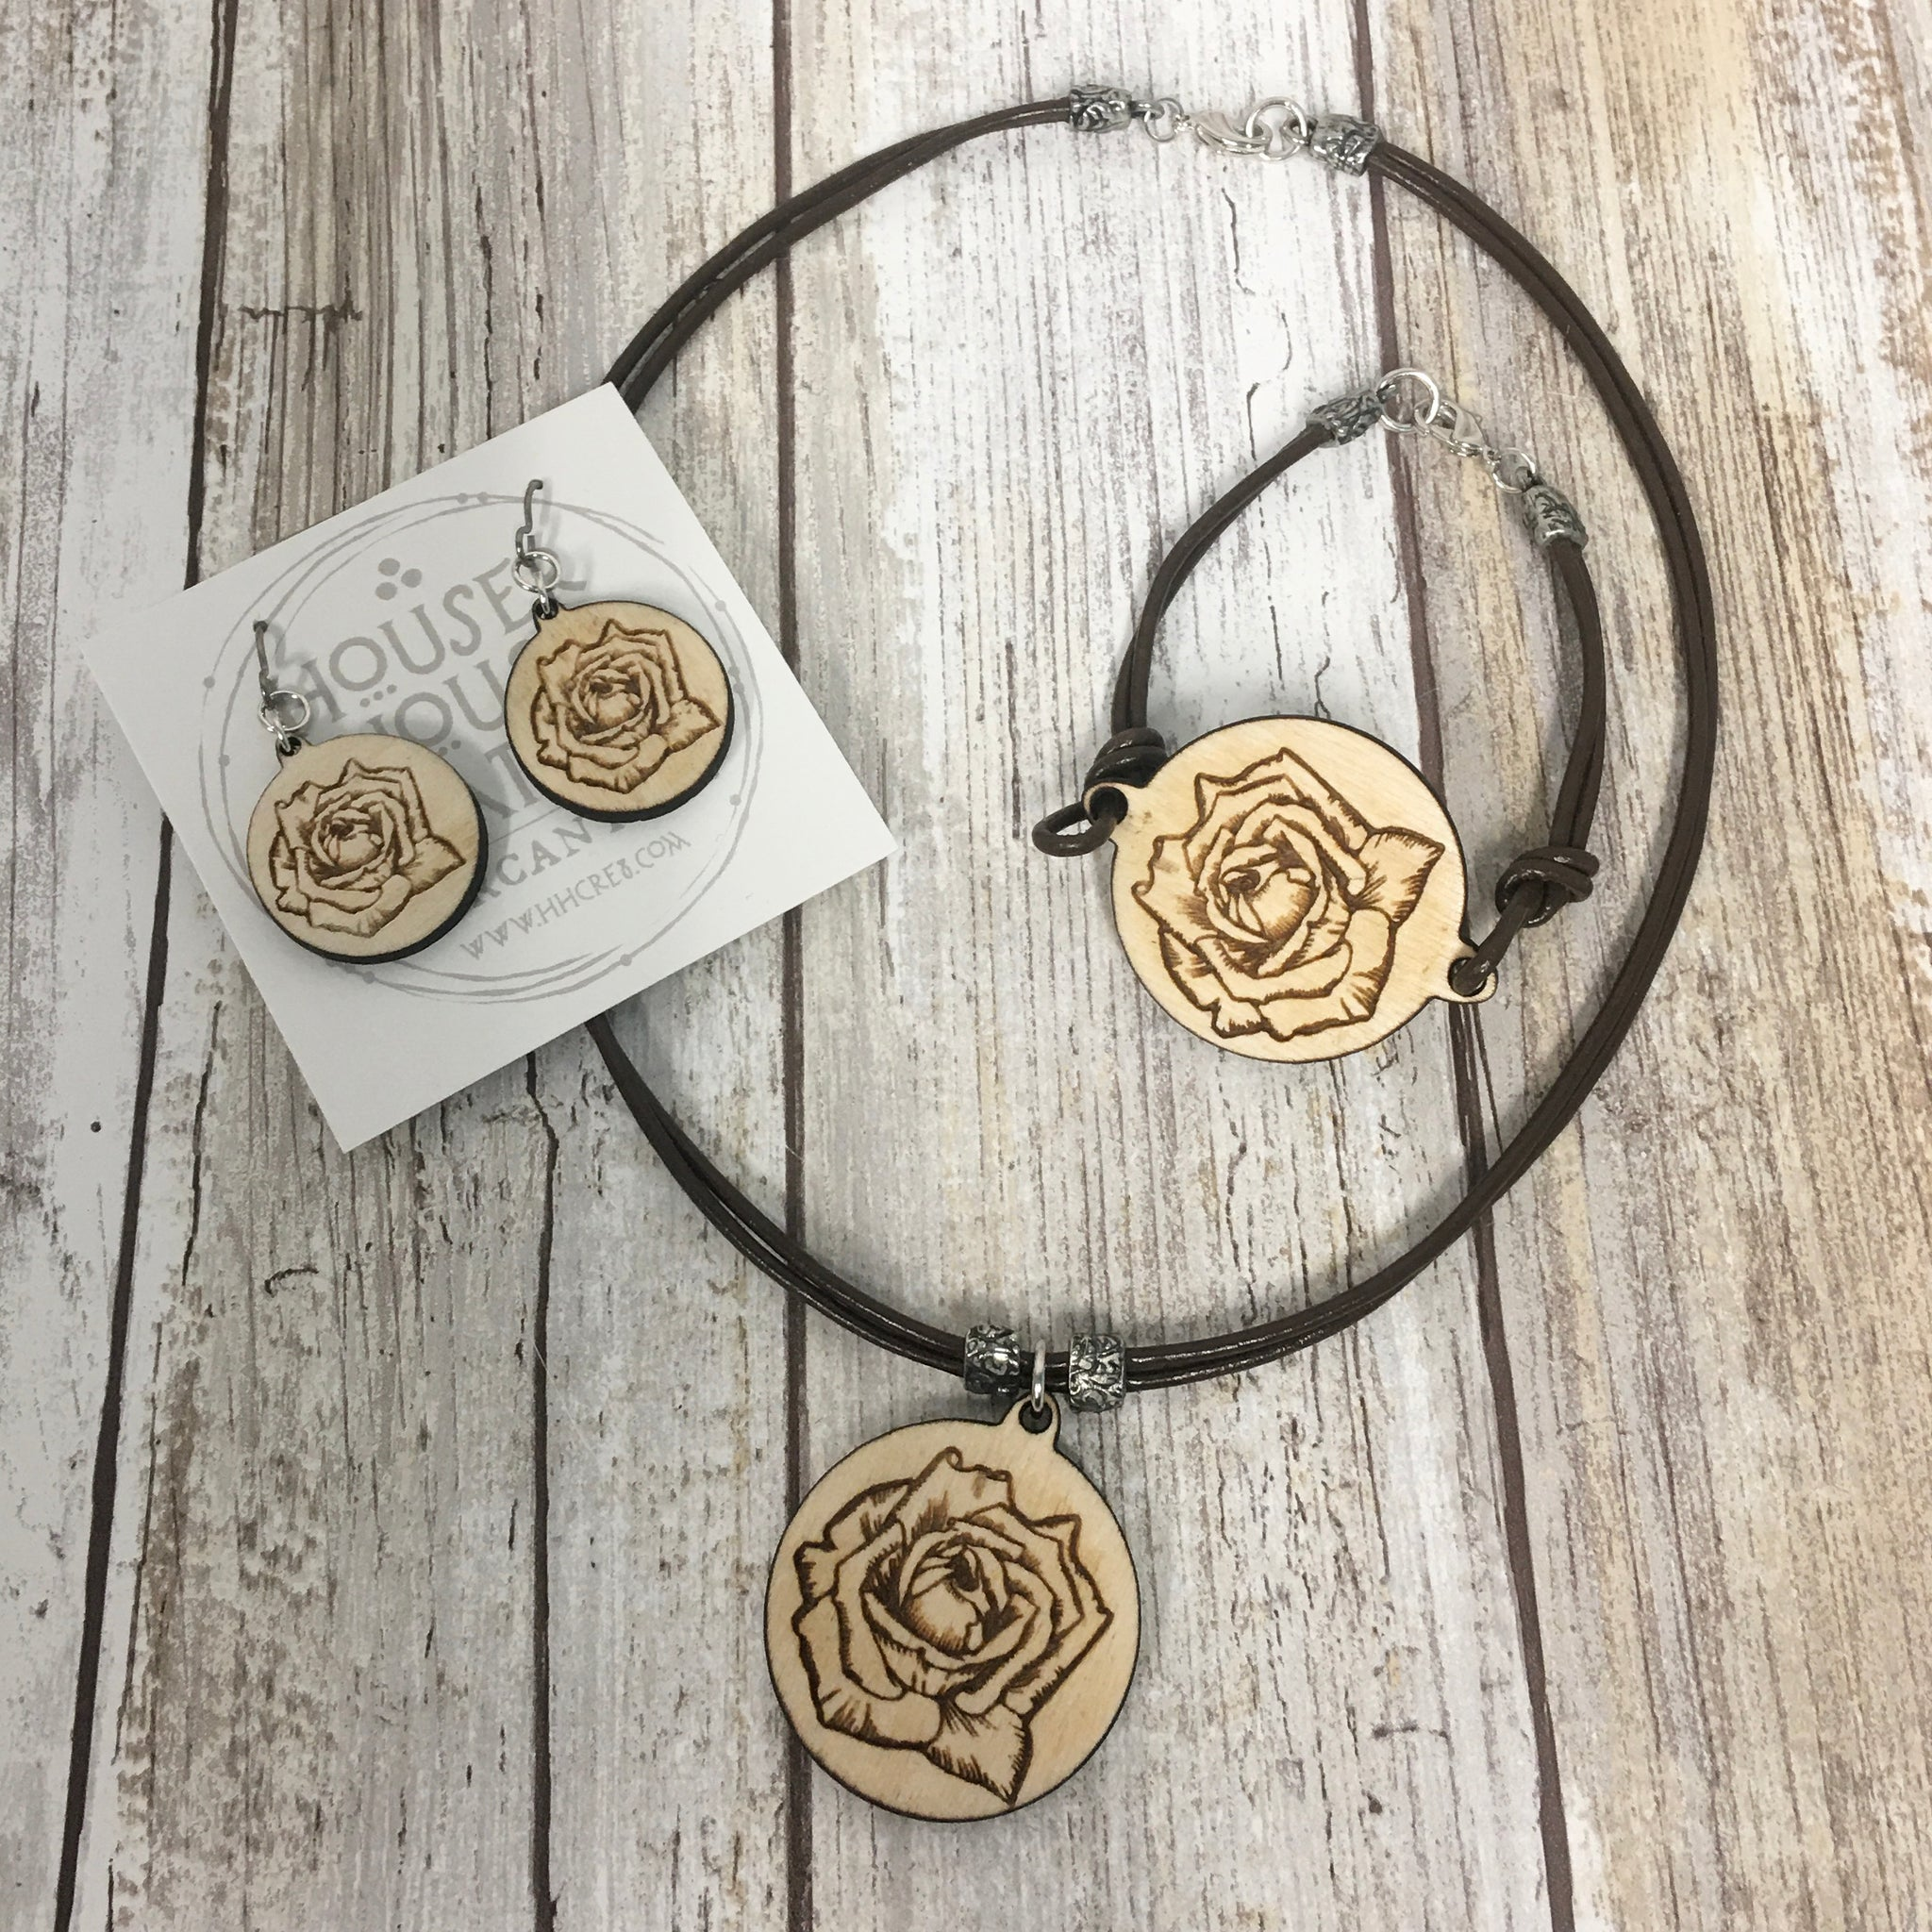 Rose Bud Flower - Bracelet, Earrings and Pendant Necklace - Baltic Birch Wood